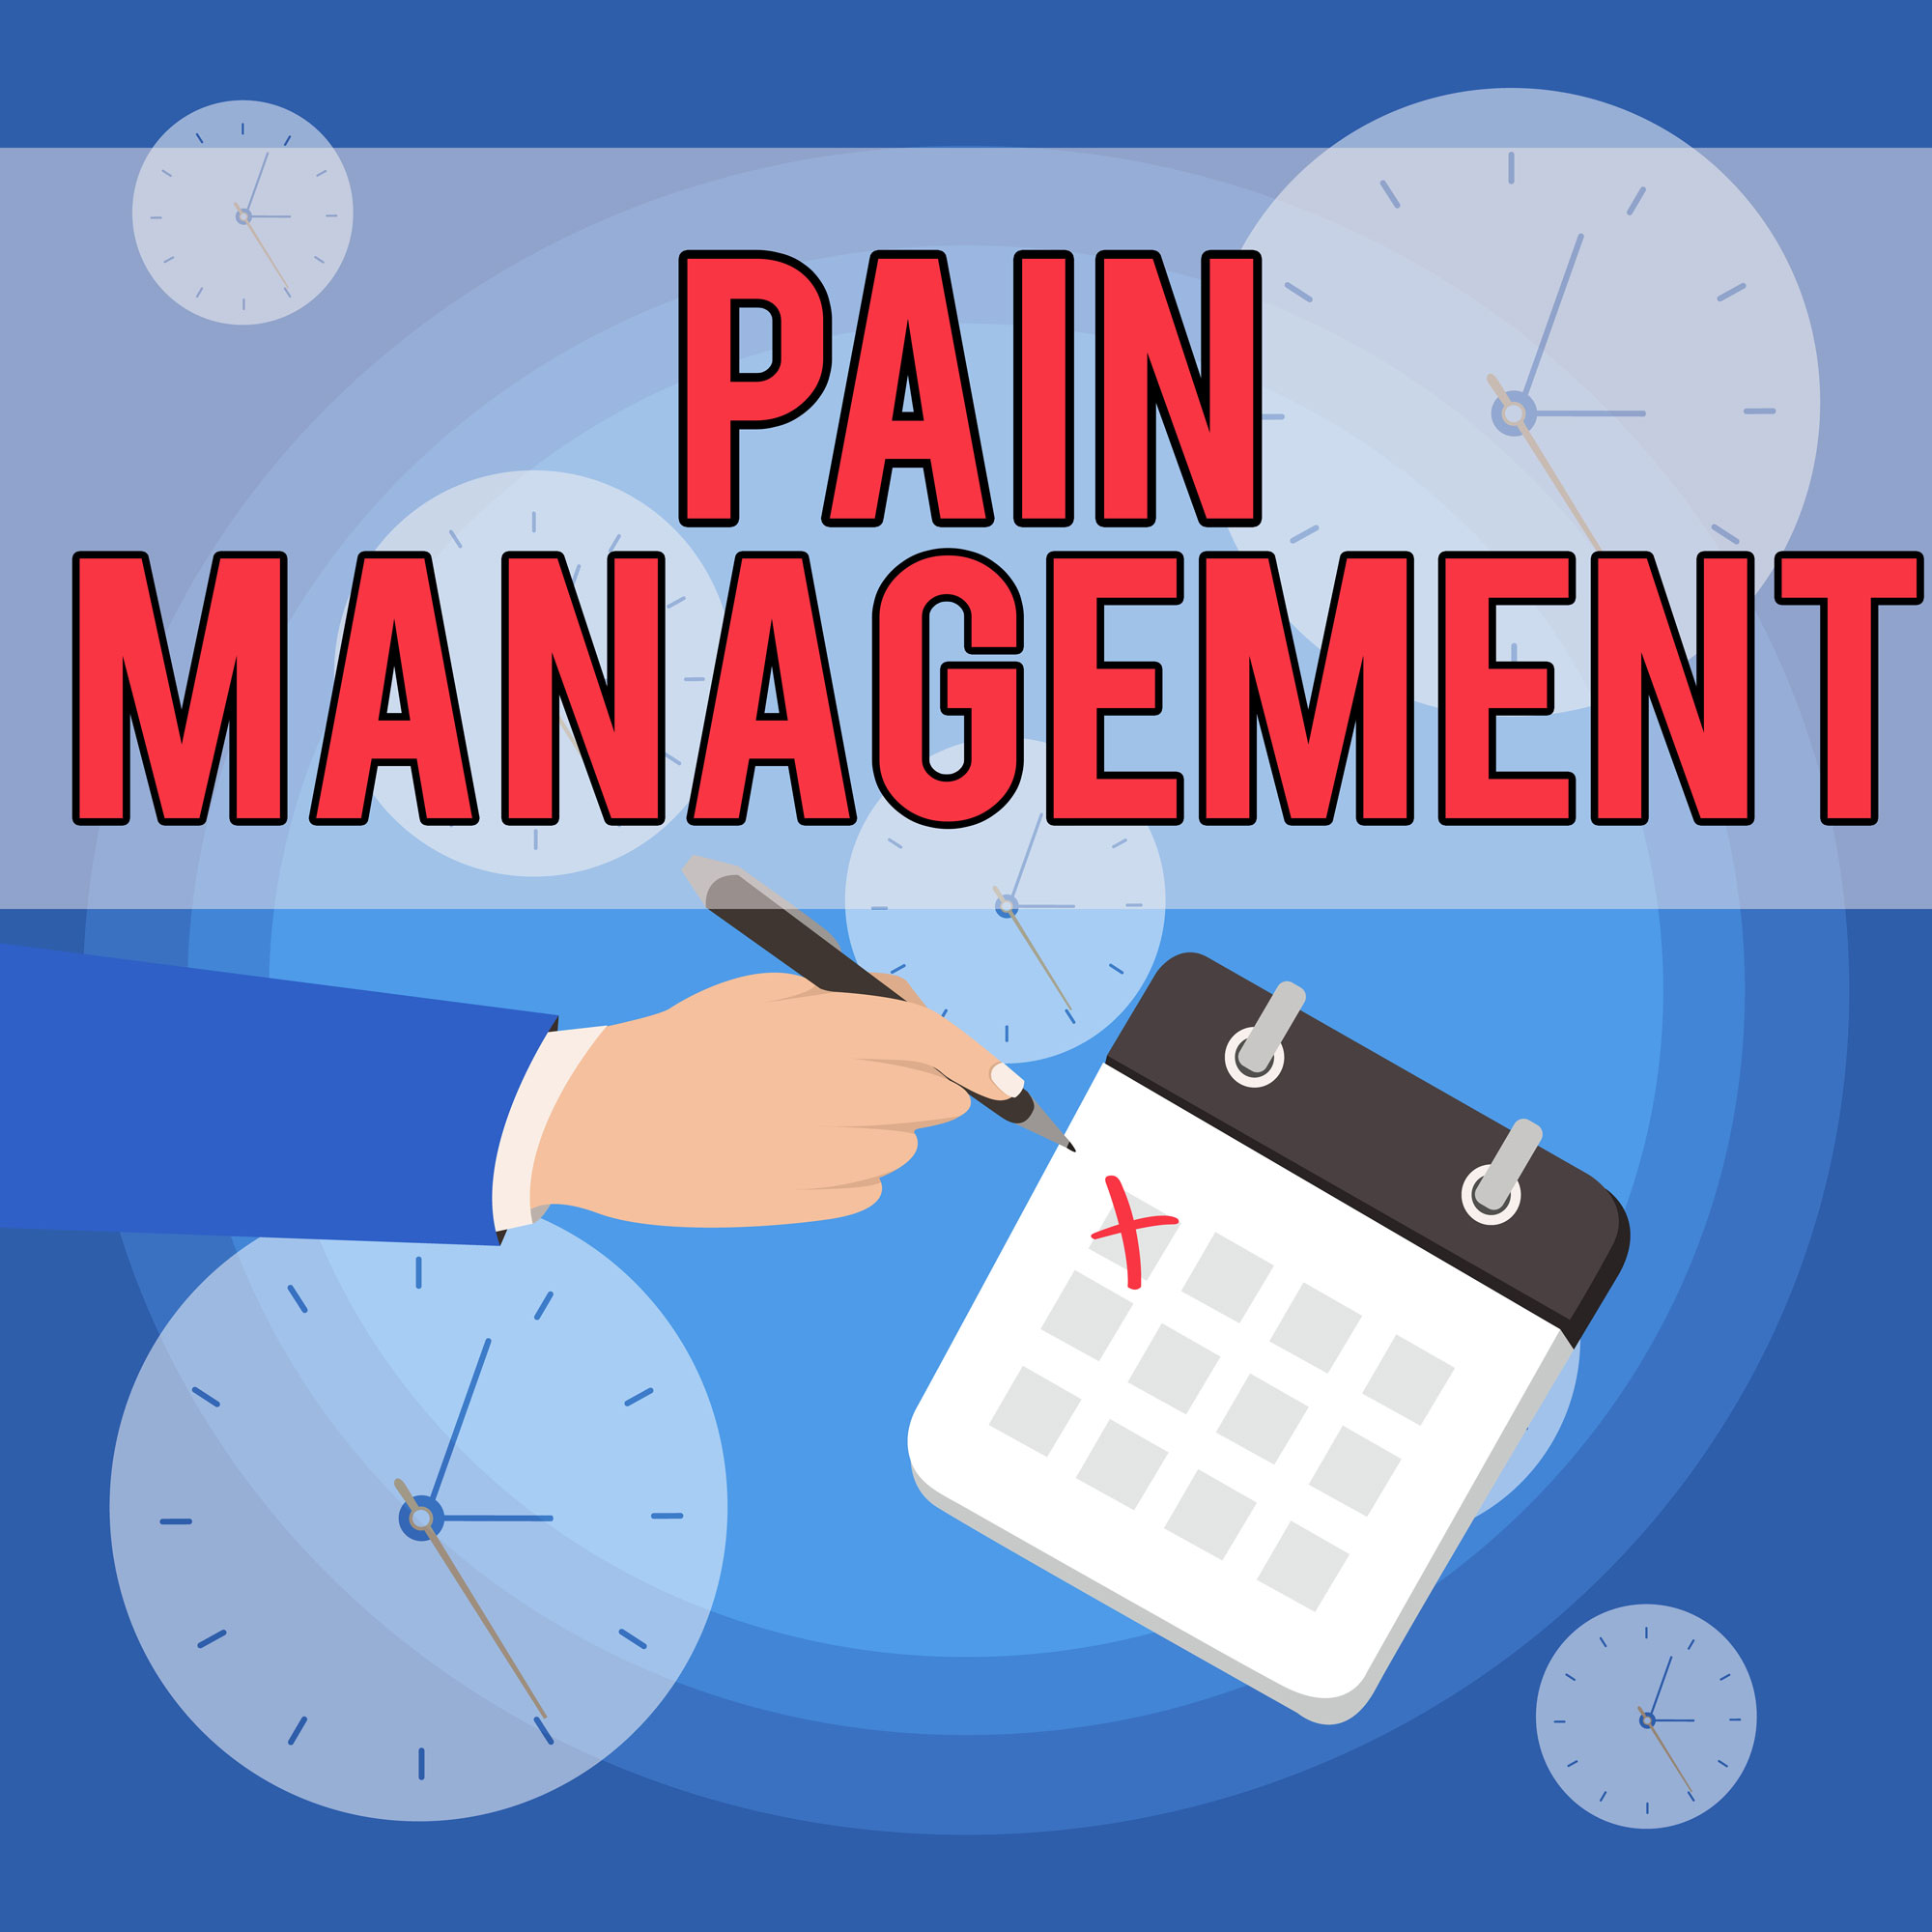 Pain Resolution, 12 Months 'Til Less Pain in 2017!